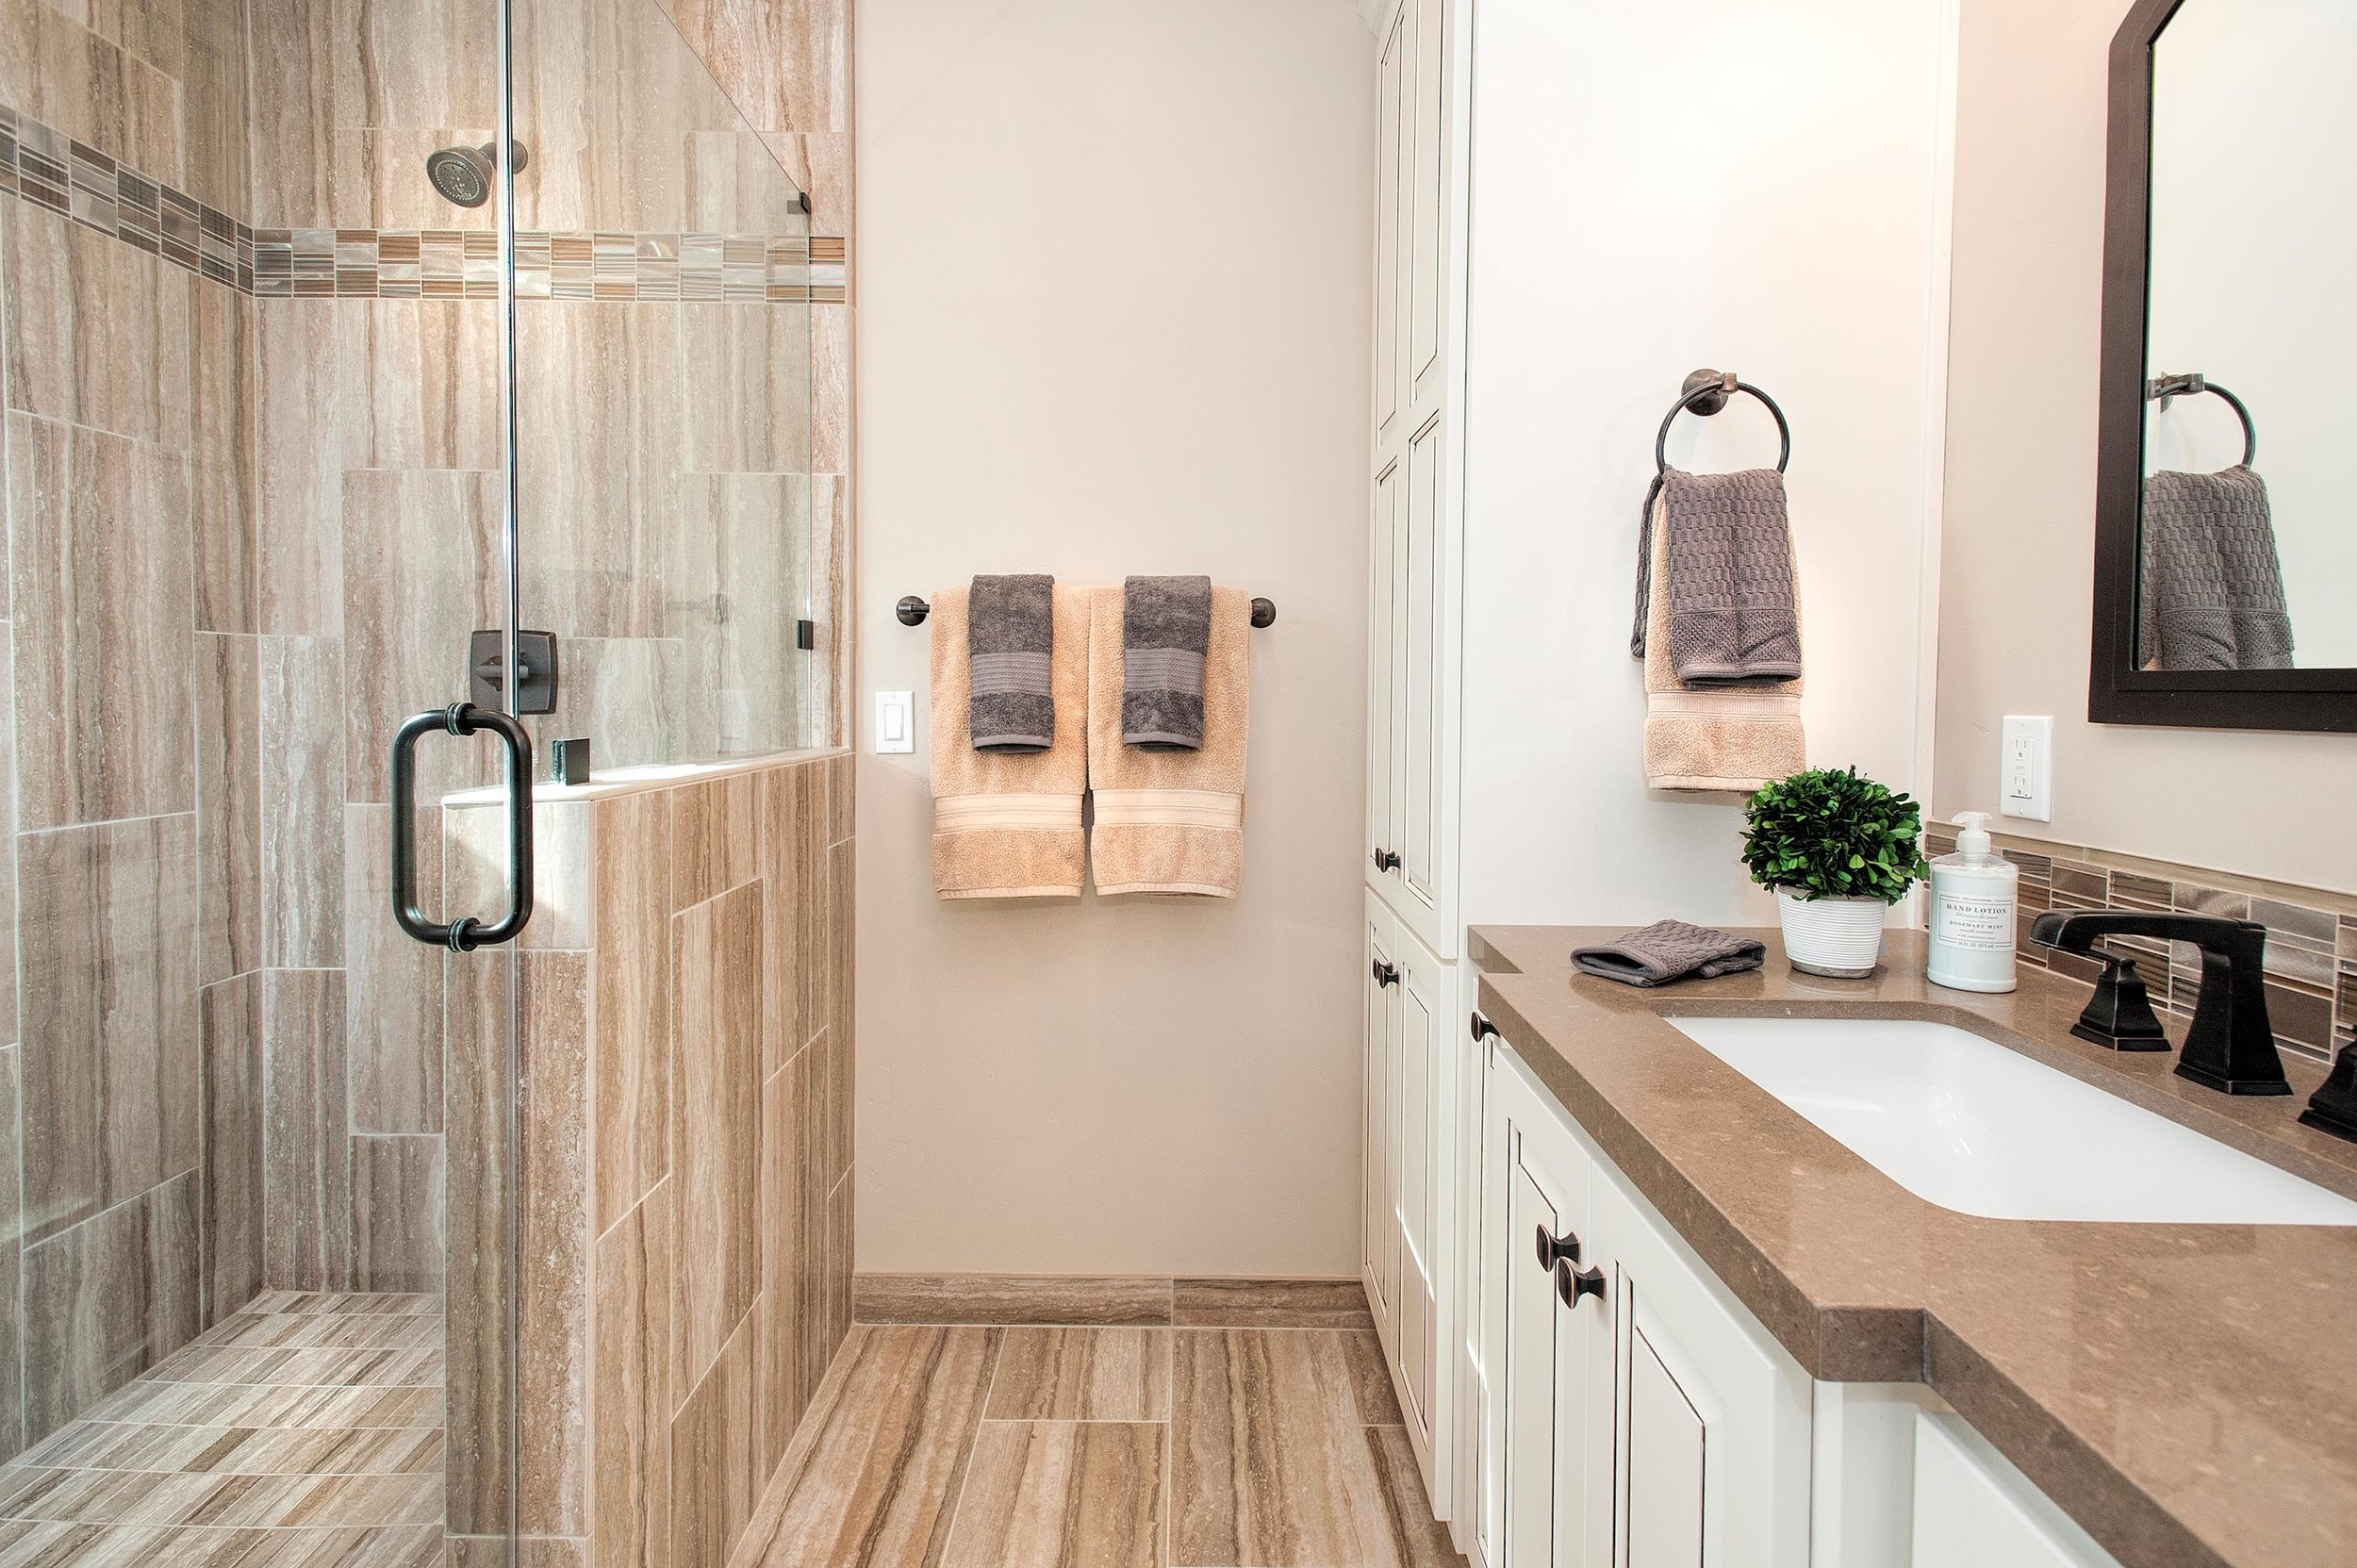 Stylish bathroom with mirror, faucet and wood look tile flooring